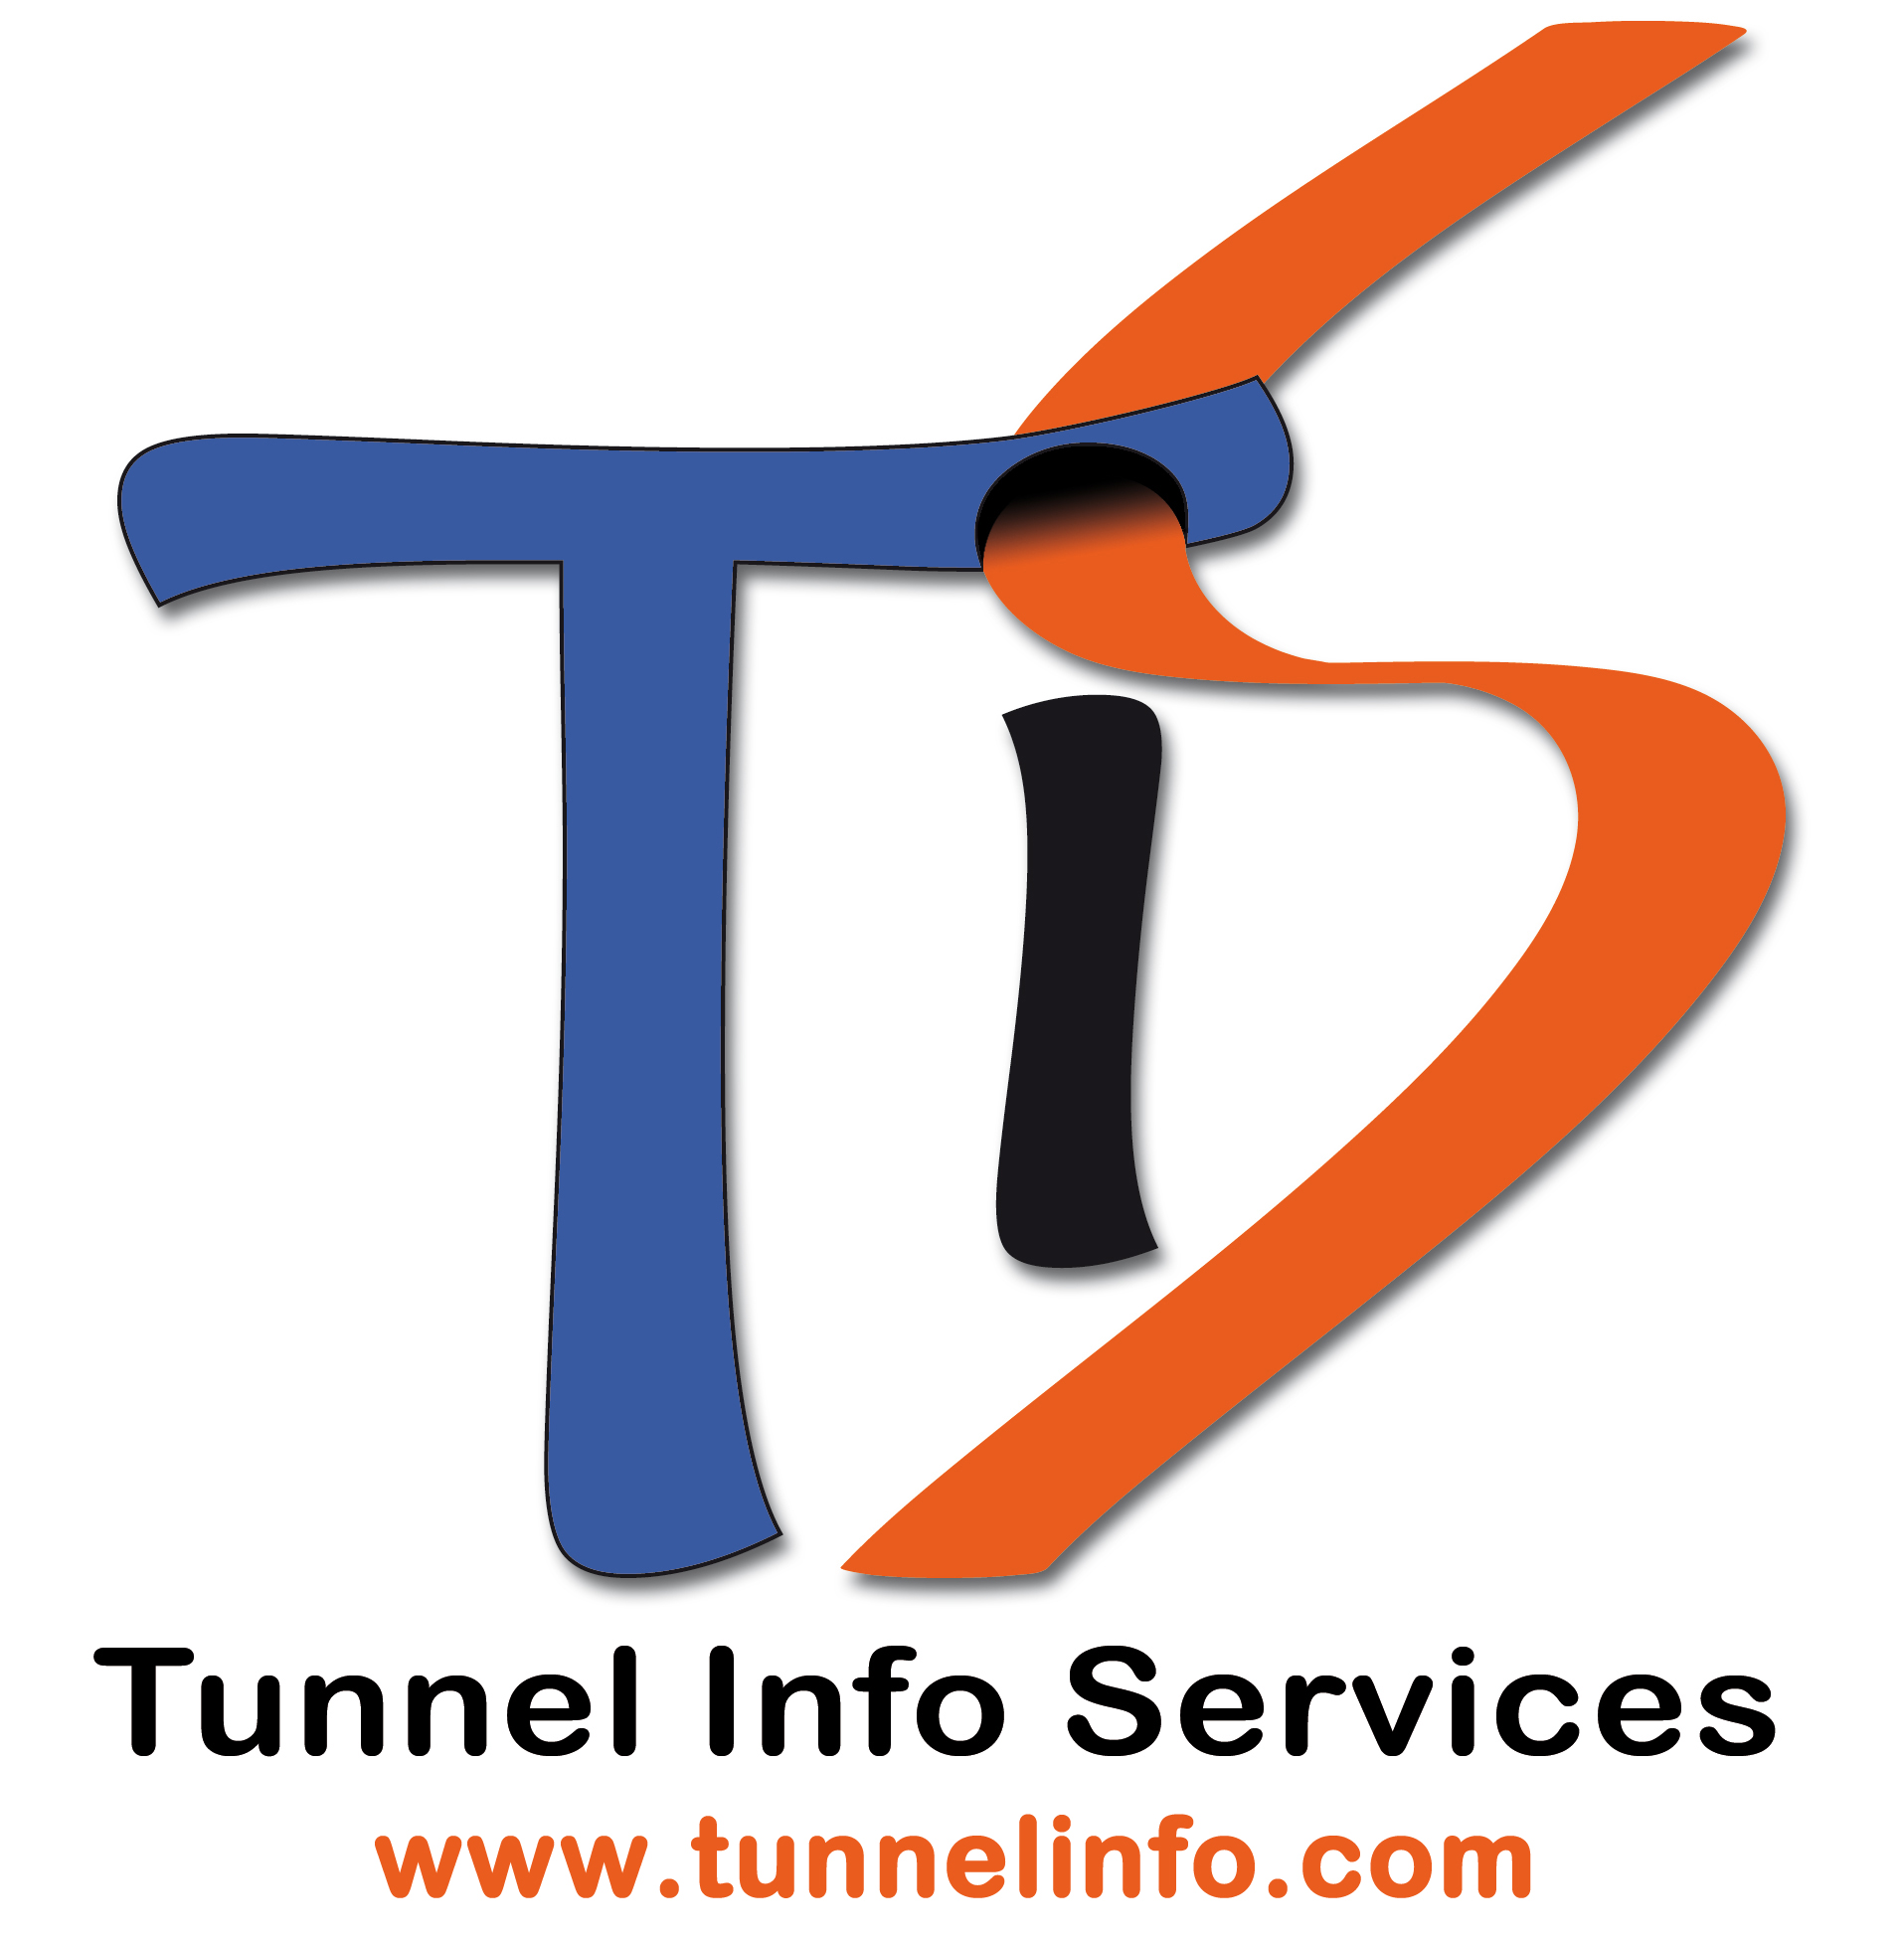 Tunnel Info Services